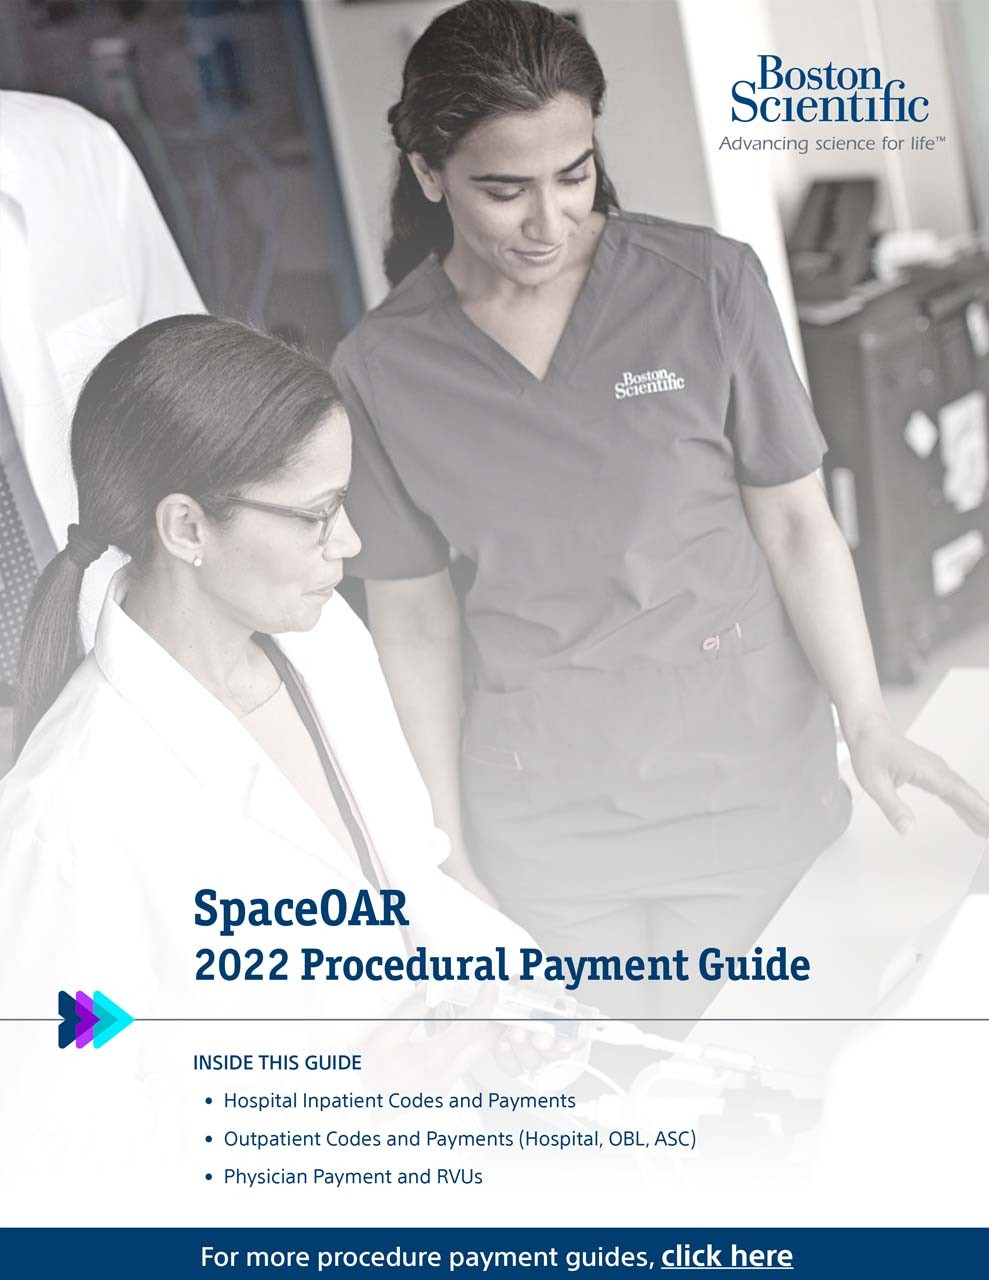 SpaceOAR Procedure Coding and Payment Guide